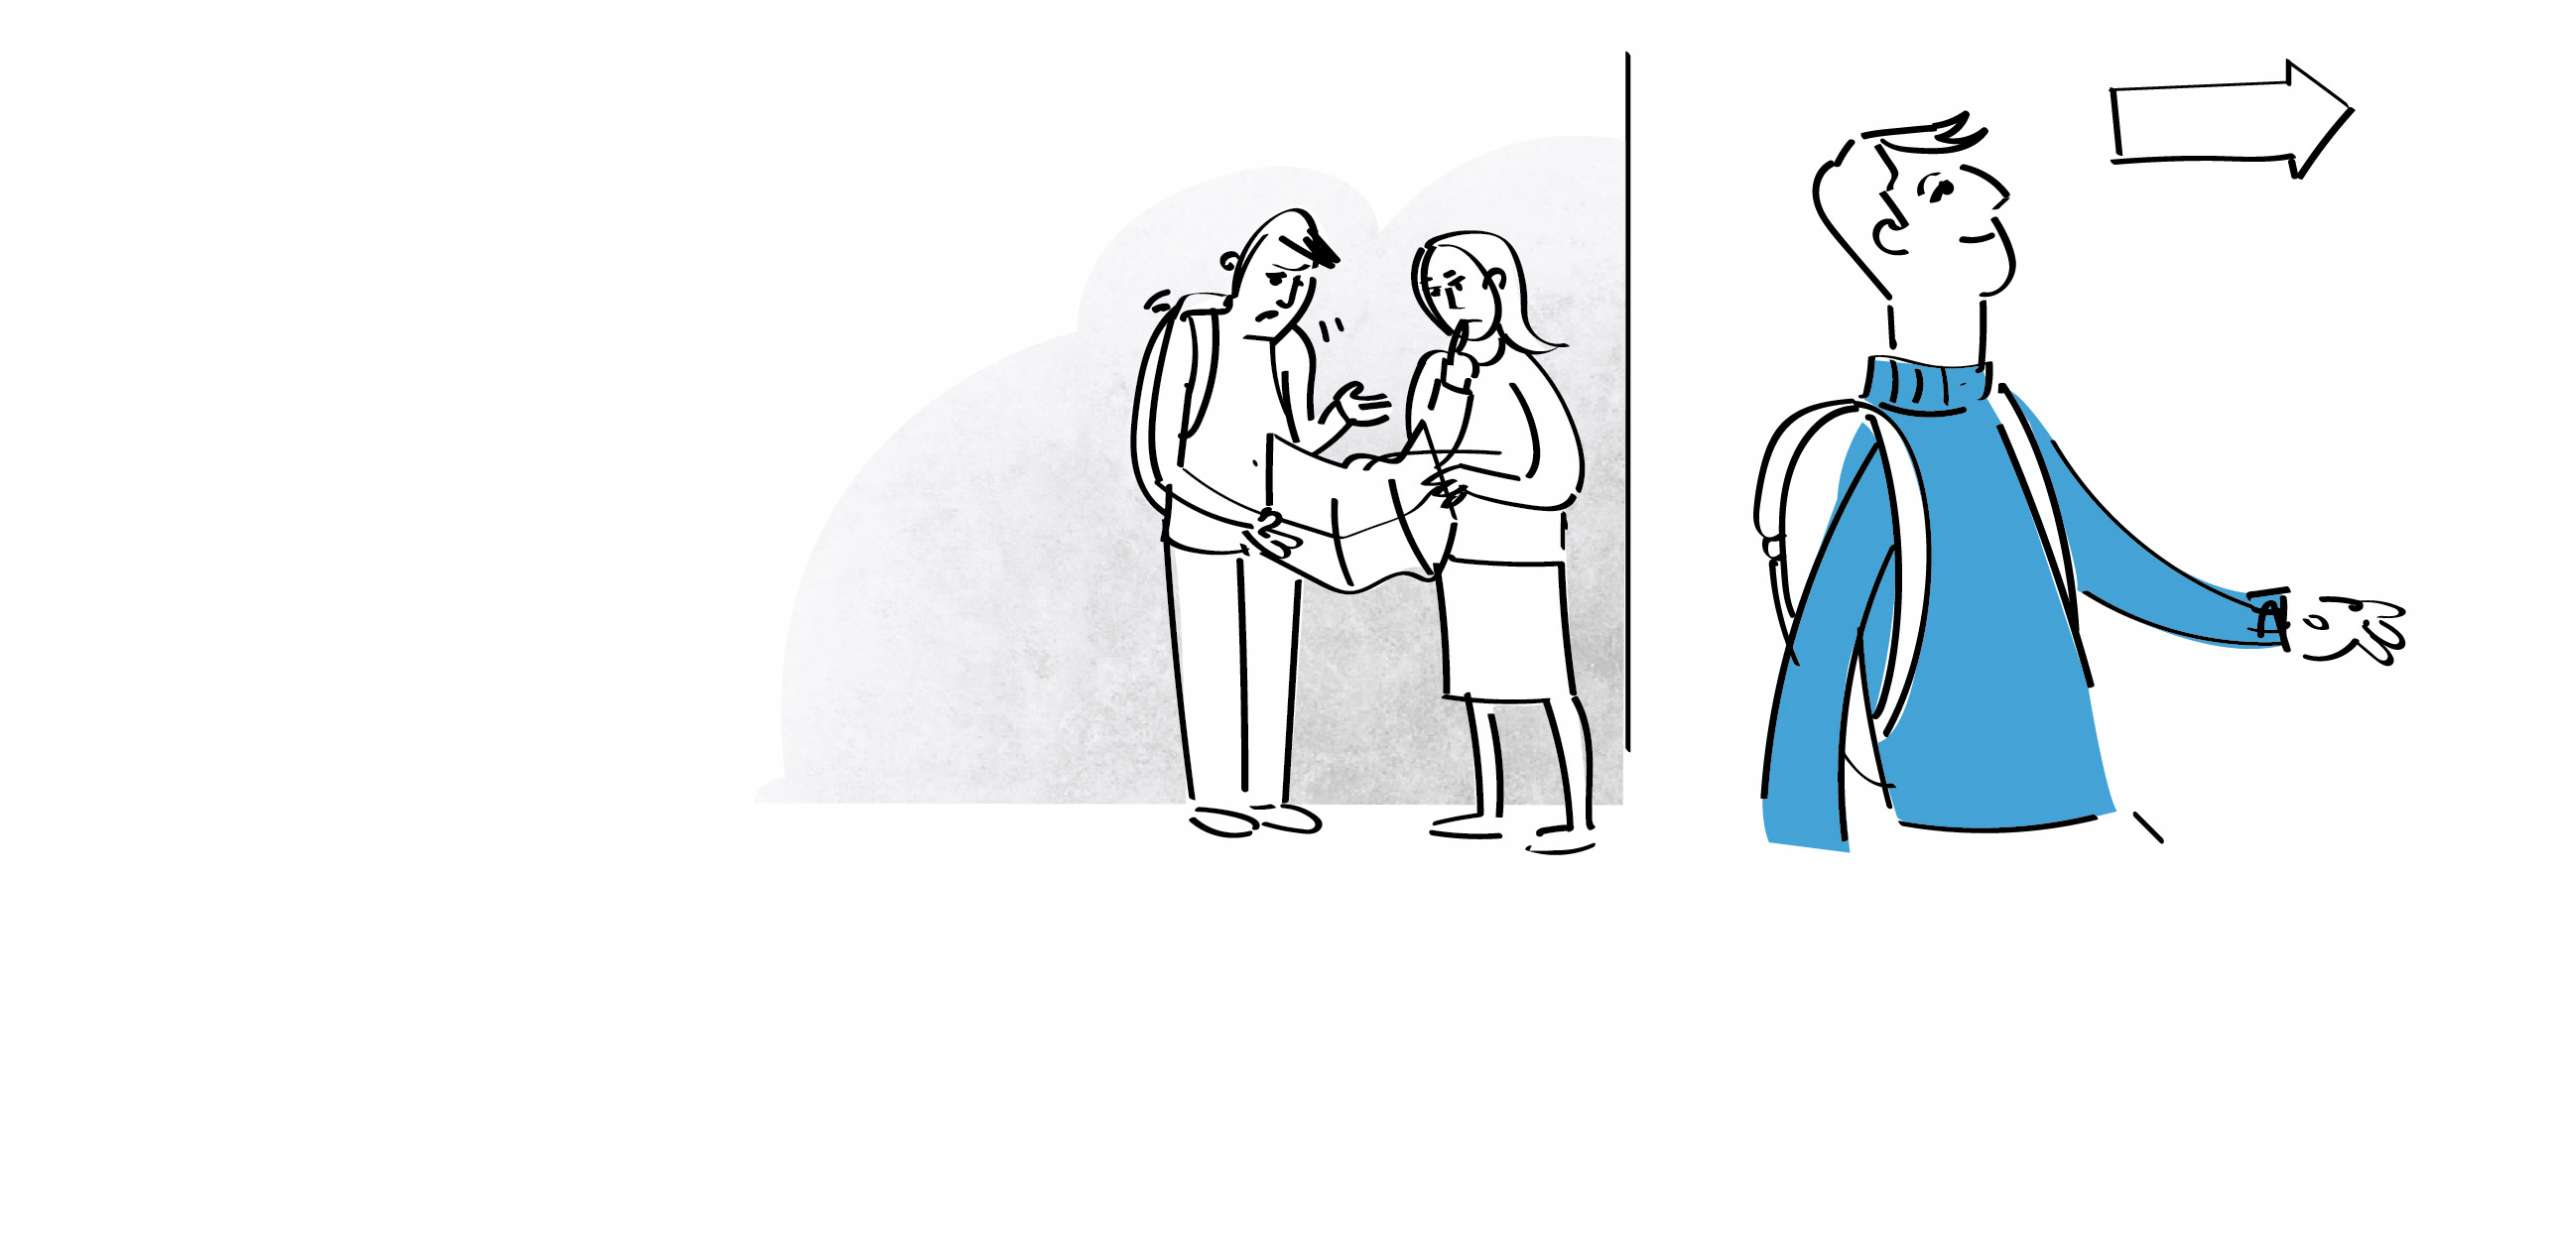 Better service communication helps customers and the business